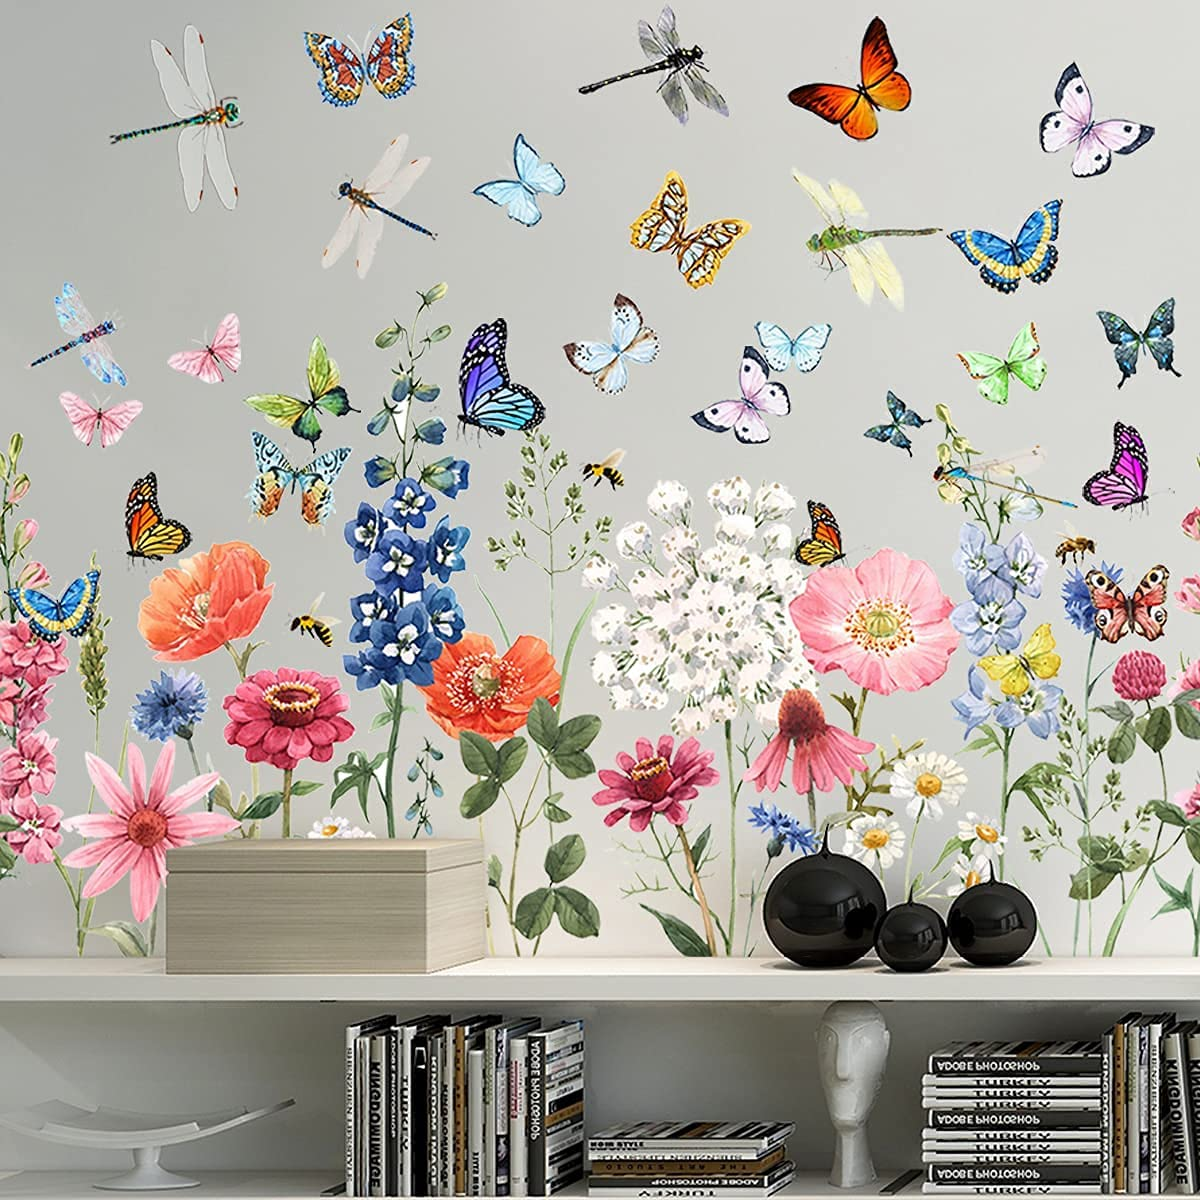 Colorful Flowers Wall Decal Garden Butterflies Dragonflies Vinyl Wall Decals Stickers Removable Peel and Stick for Kids Room Nursery Classroom Bedroom Decoration